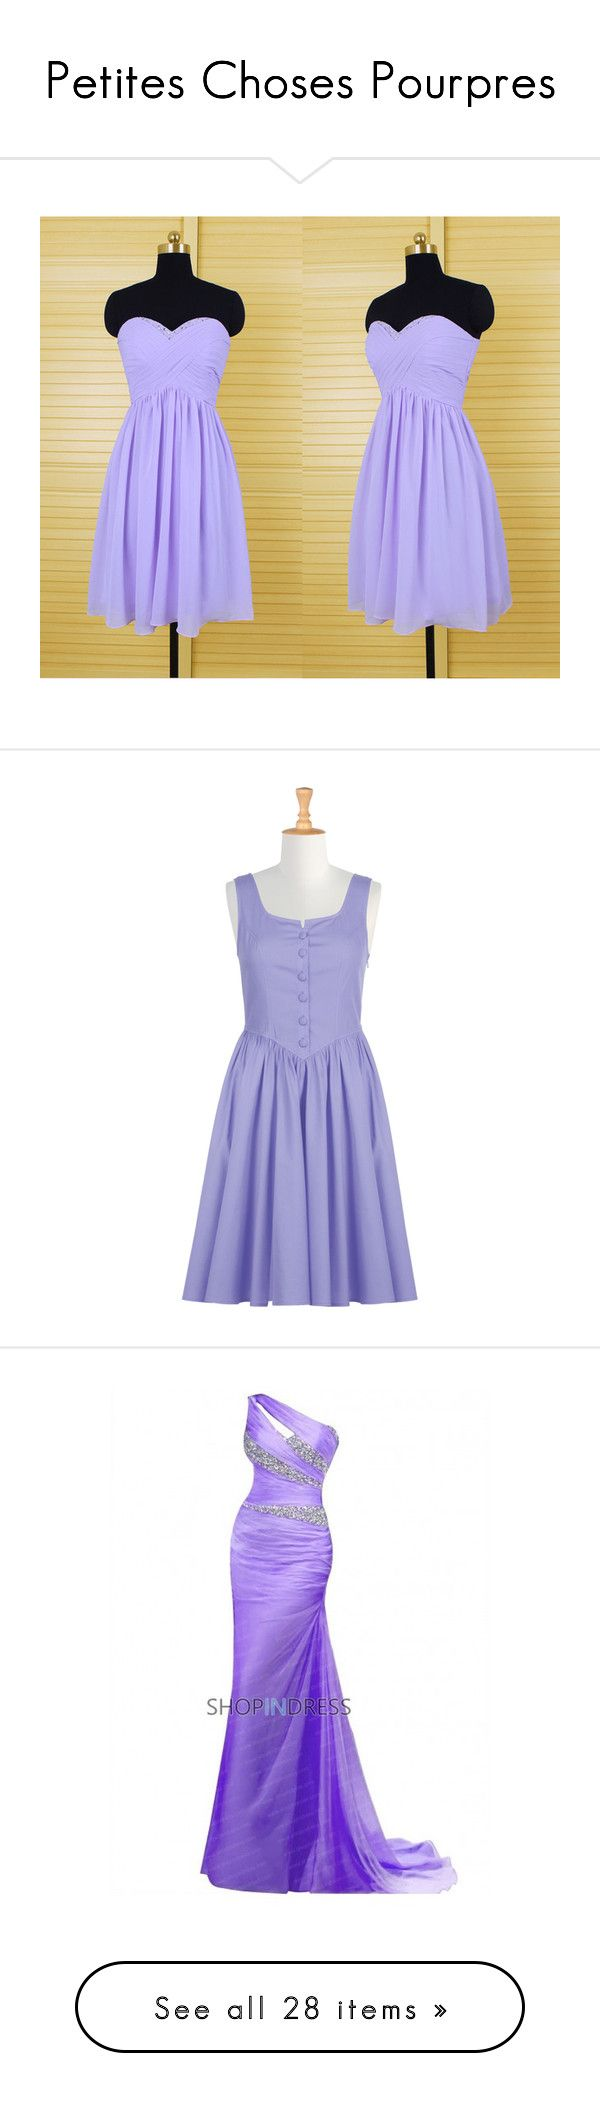 """""""Petites Choses Pourpres"""" by artemisa-538 ❤ liked on Polyvore featuring dresses, black, women's clothing, bridesmaid dresses, short dresses, black prom dresses, sexy black dresses, short bridesmaid dresses, lavender and eshakti dress"""